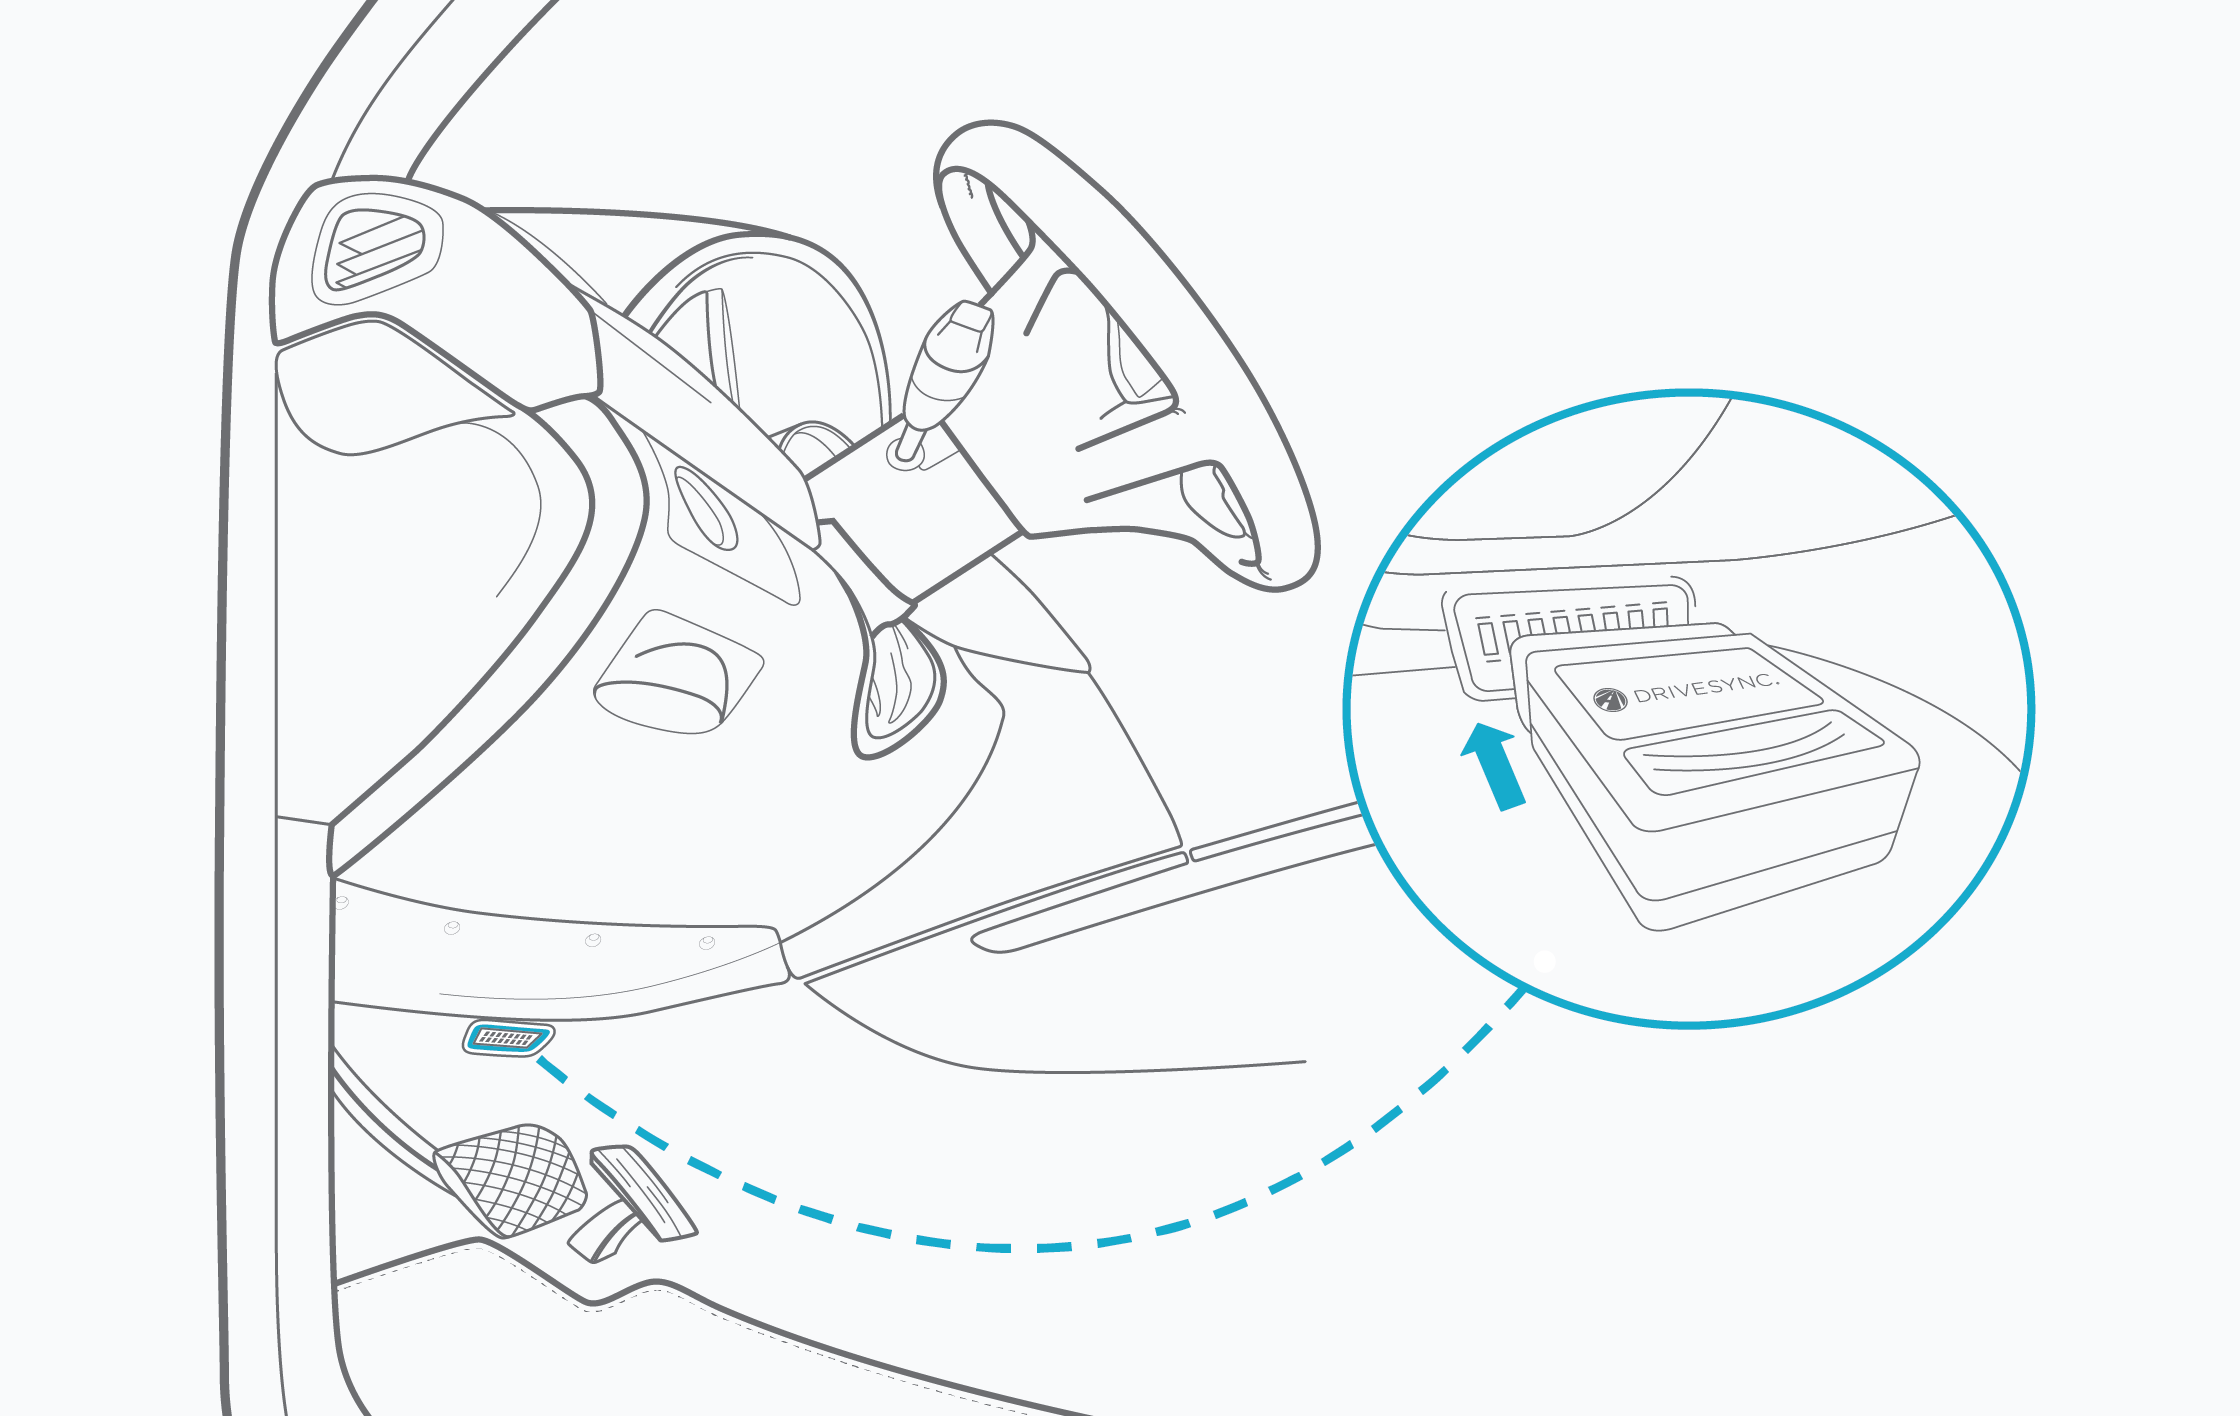 Sample image of the location of a vehicle's OBD-II port, typically located under the dashboard near the base of the steering wheel column. This image also shows how the DriveSync device plugs into the port.